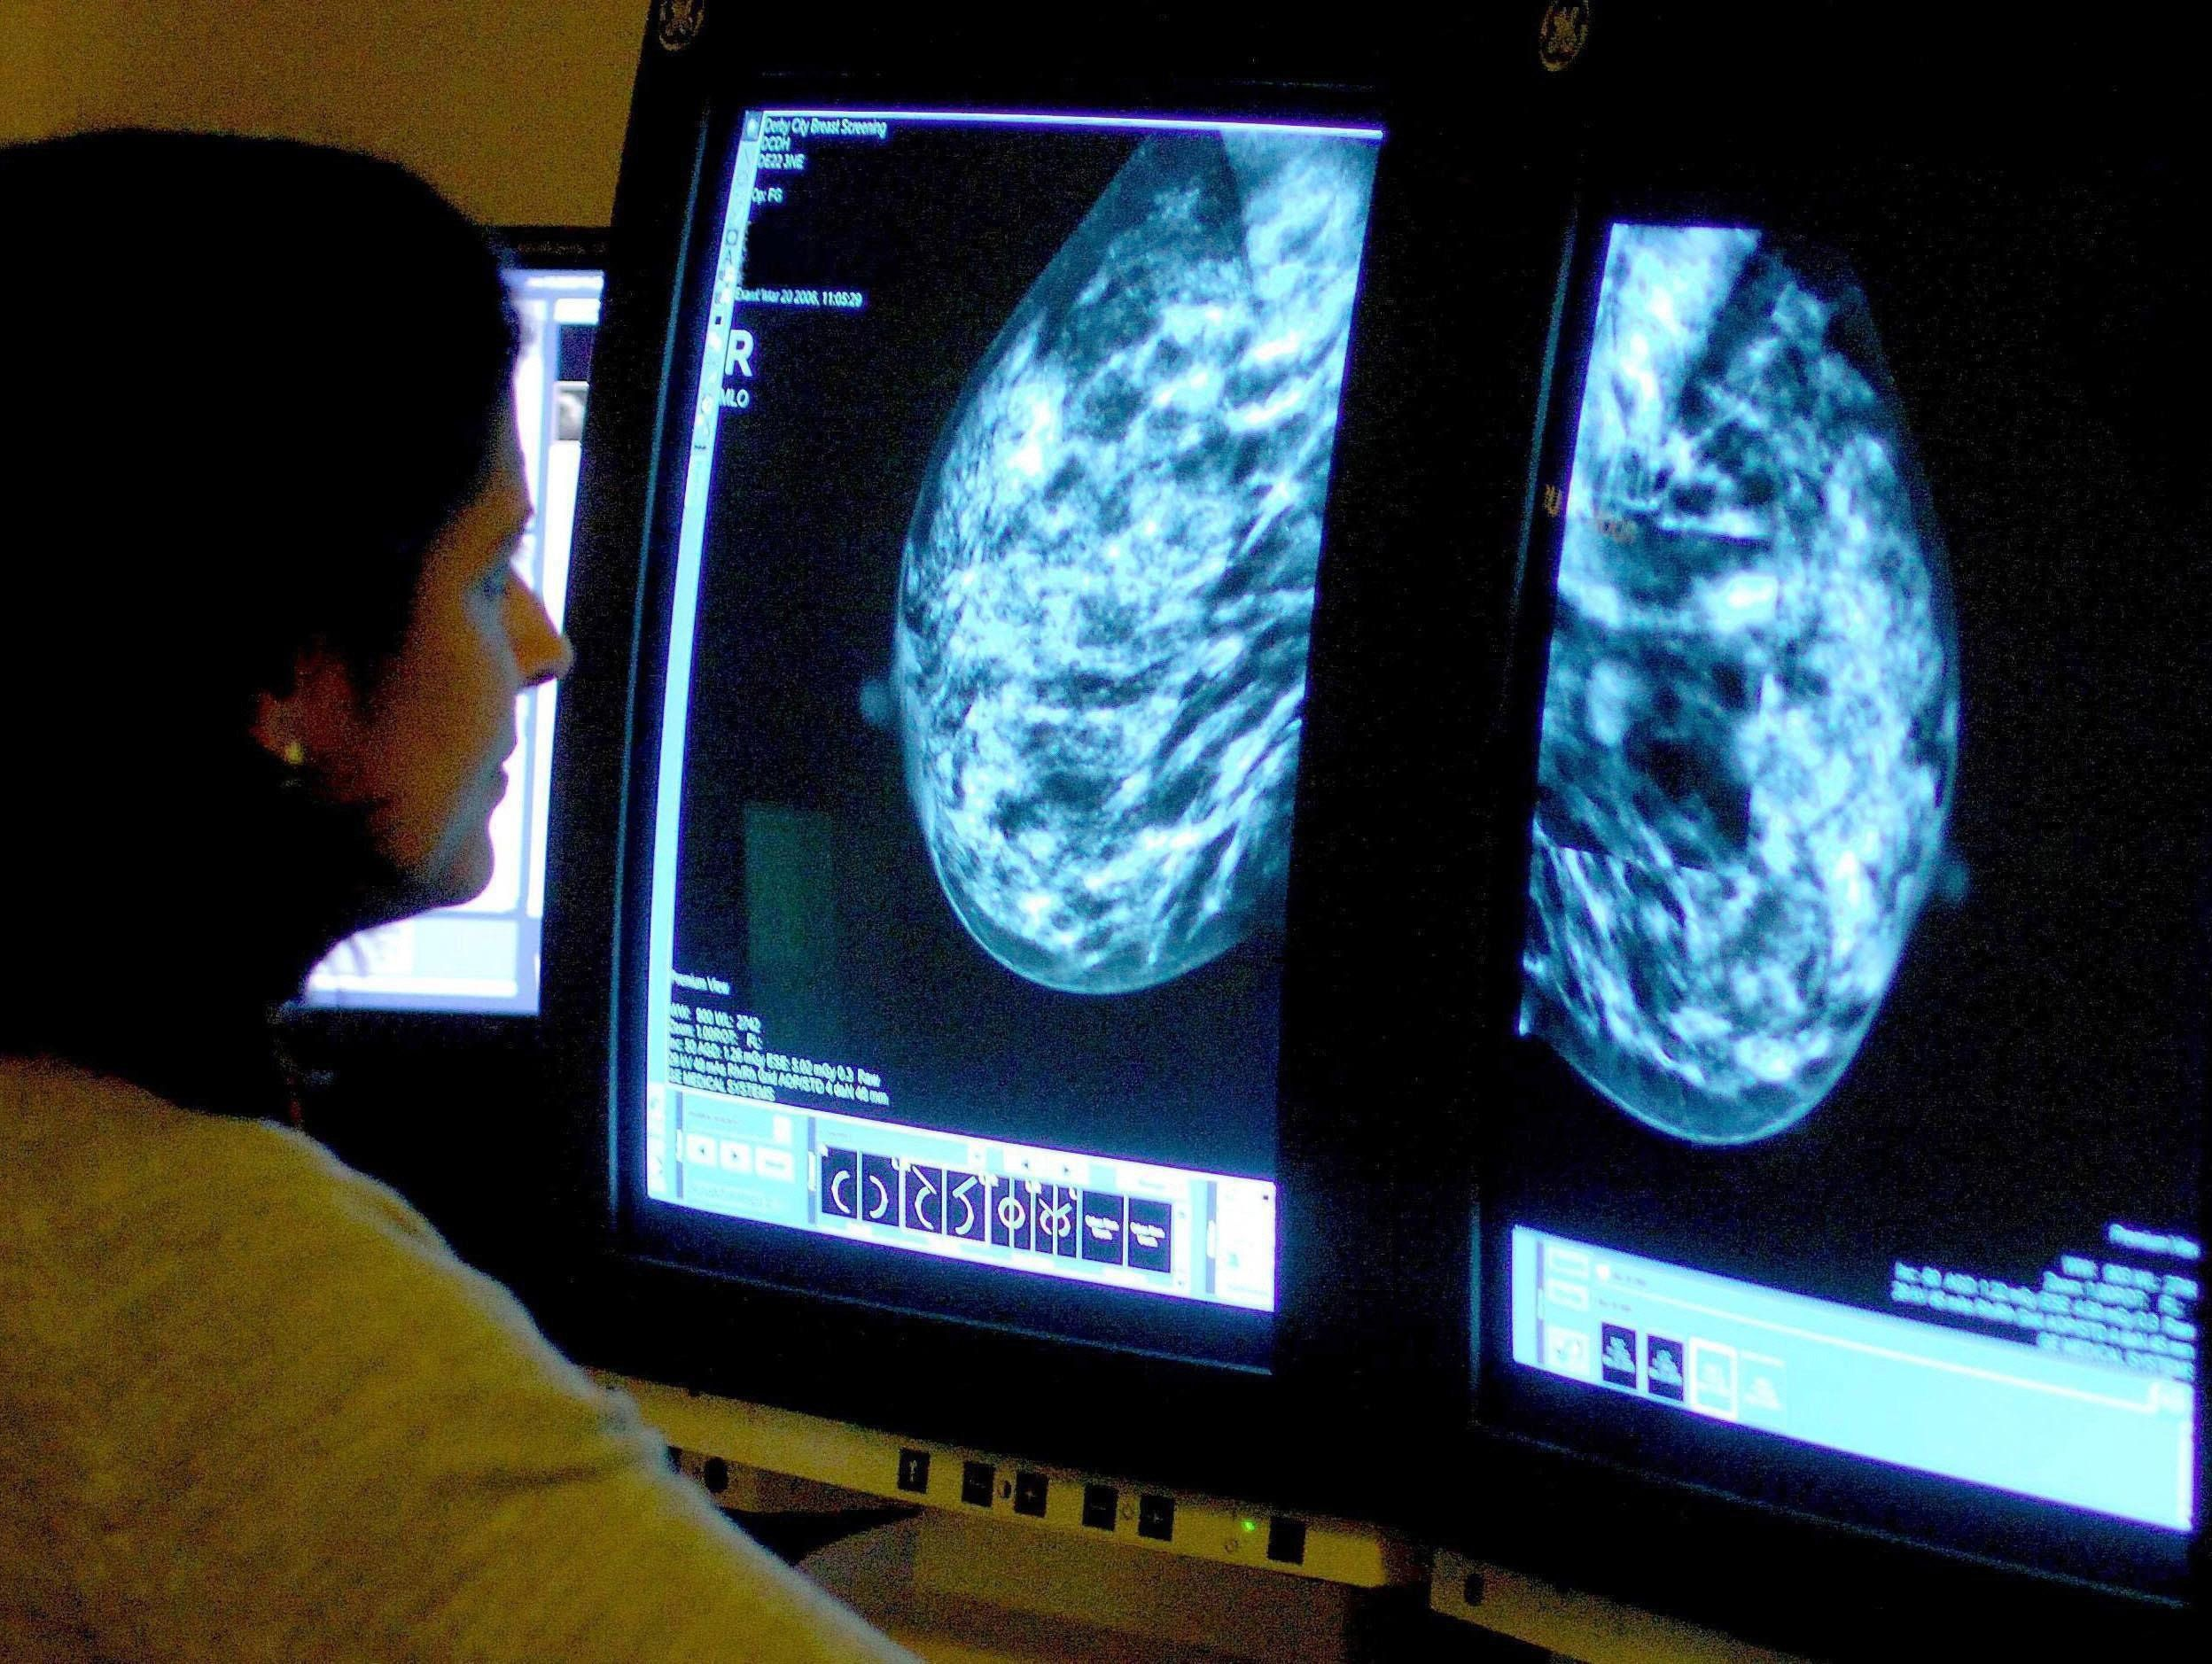 A consultant analyzing a mammogram. Cancer screening has never been shown to save lives in the way that is often claimed, experts have argued.